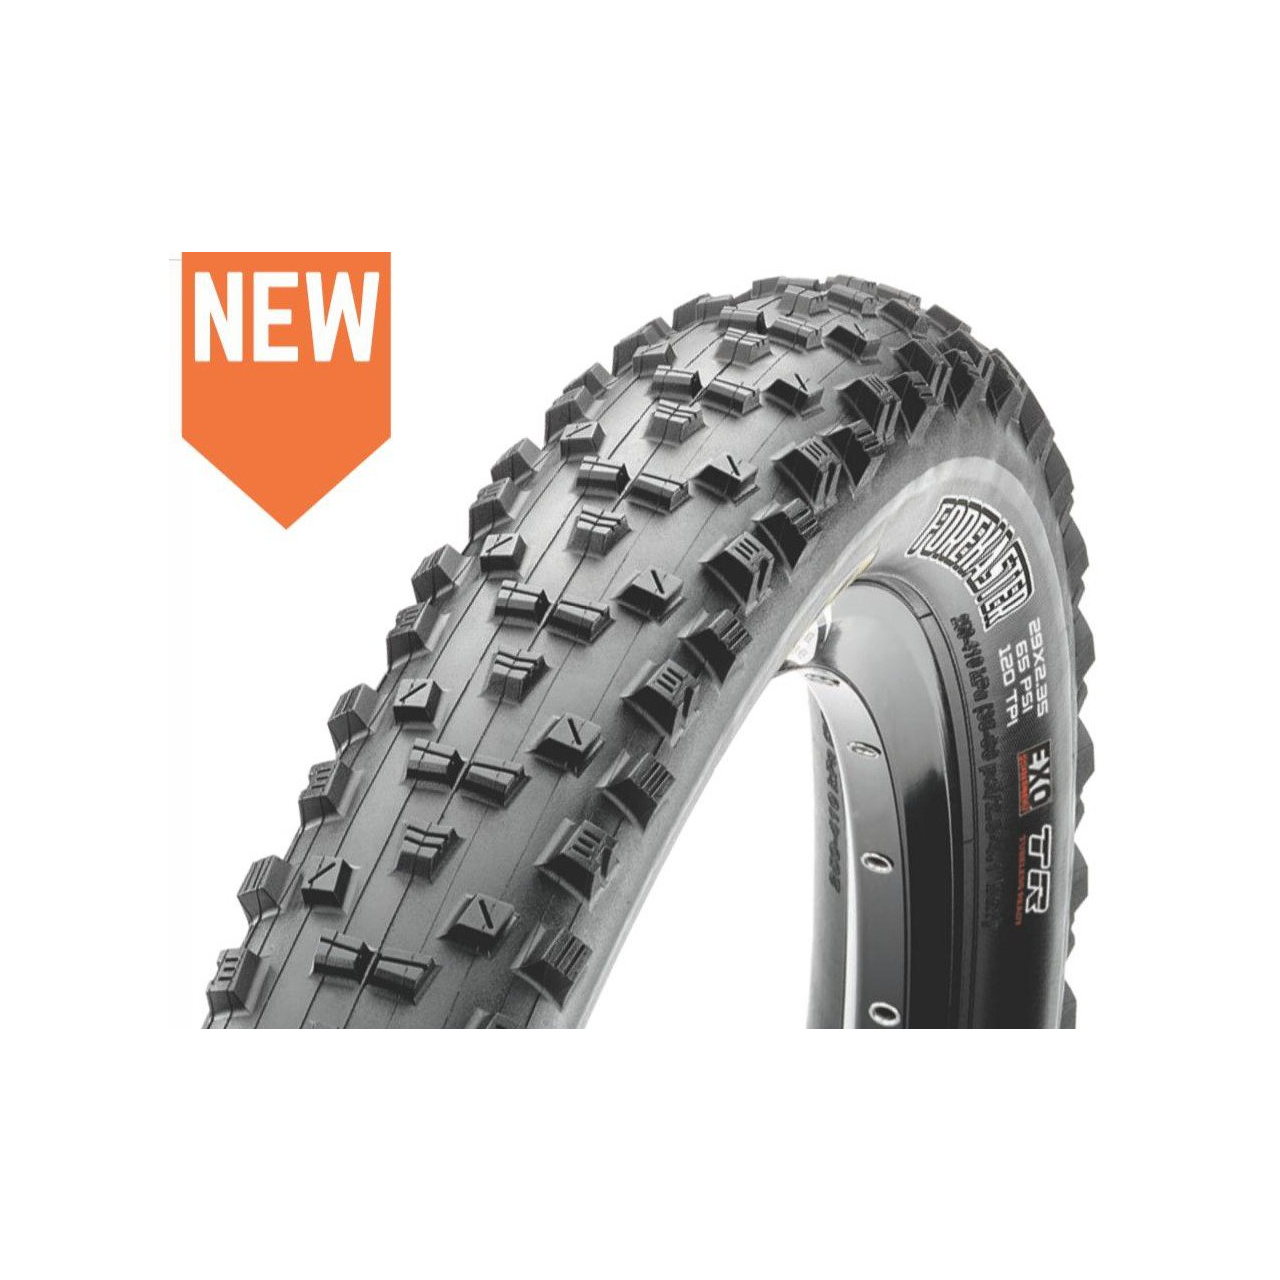 Maxxis Forekaster kevlar 29 x 2.2 Exo T.R.